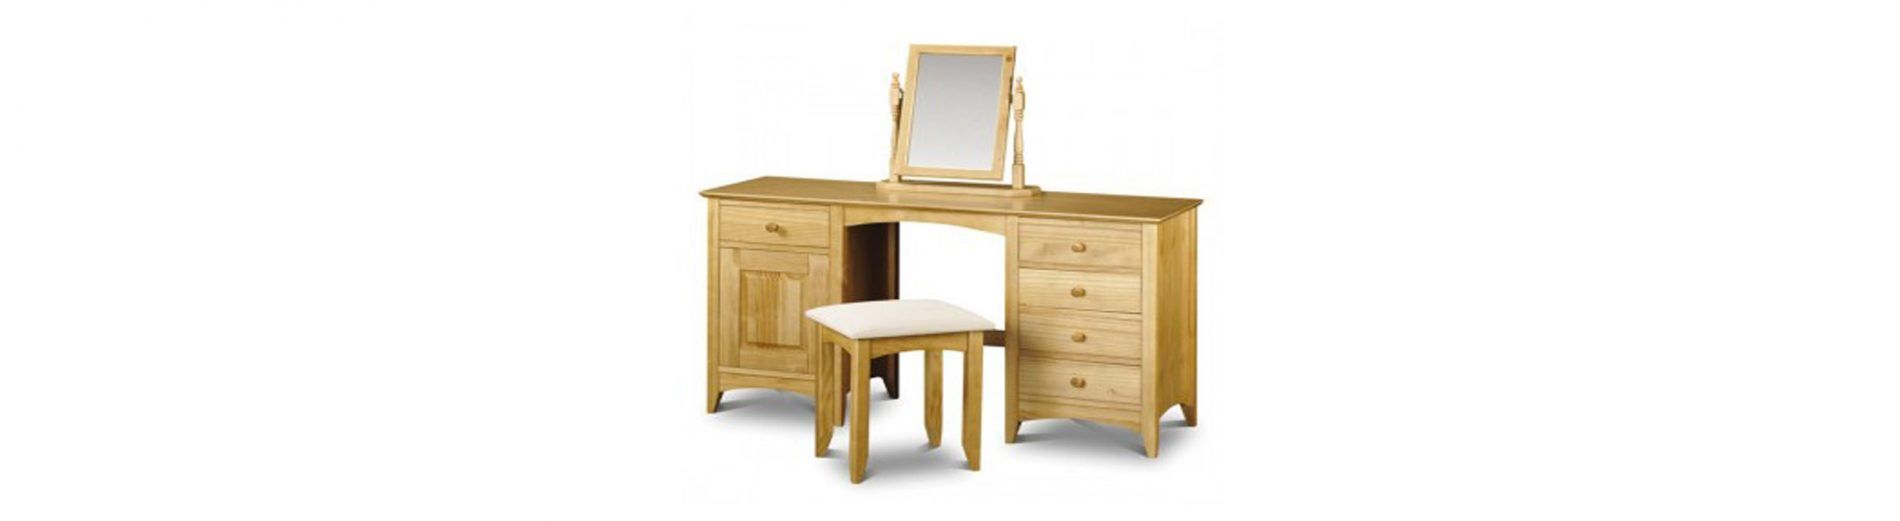 Revamp Your Bedroom with Dressing Table in Beech